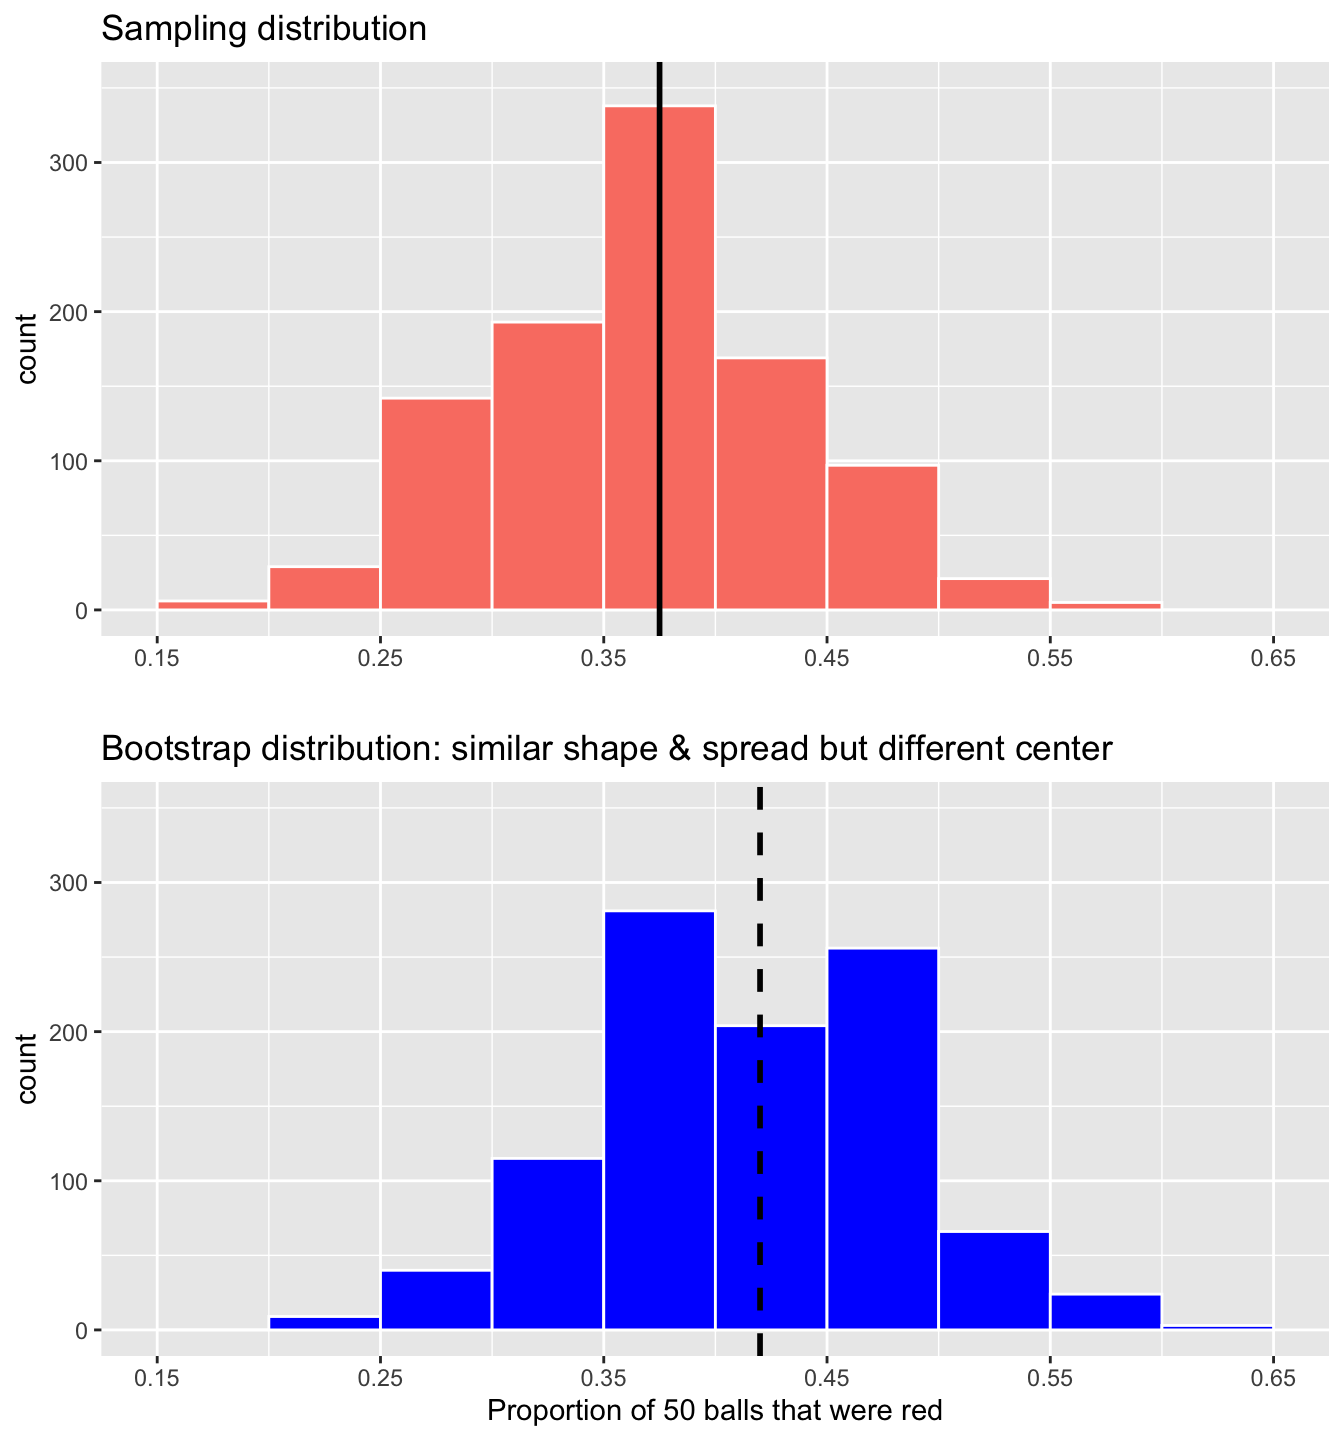 Comparing the sampling and bootstrap distributions of $\widehat{p}$